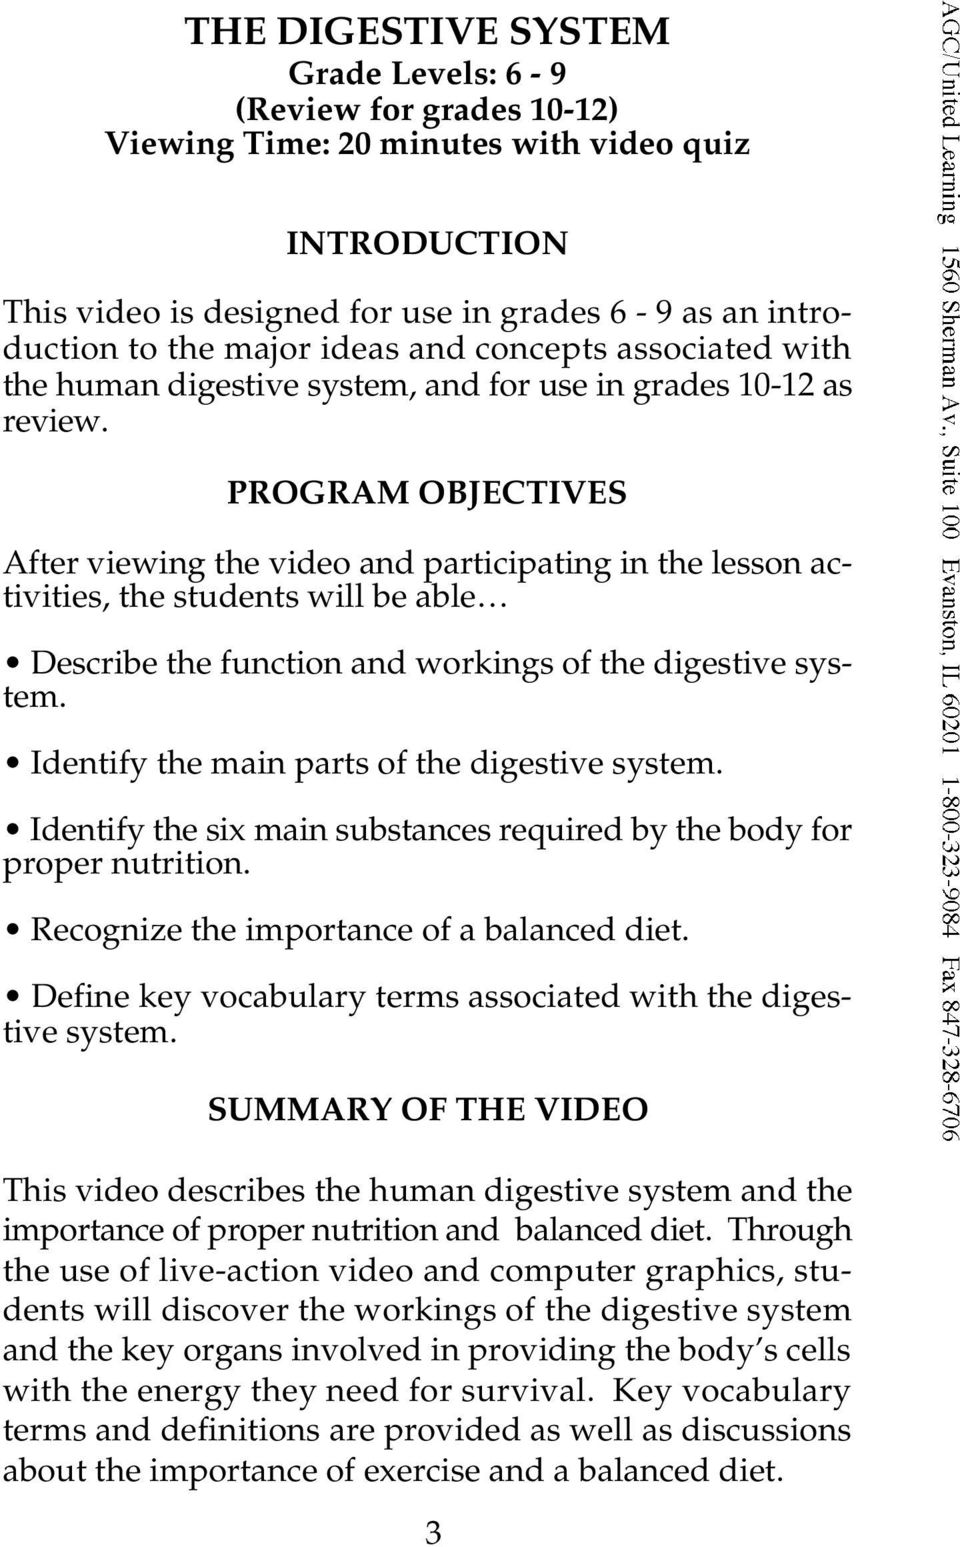 THE DIGESTIVE SYSTEM from The Human Body Systems Series - PDF